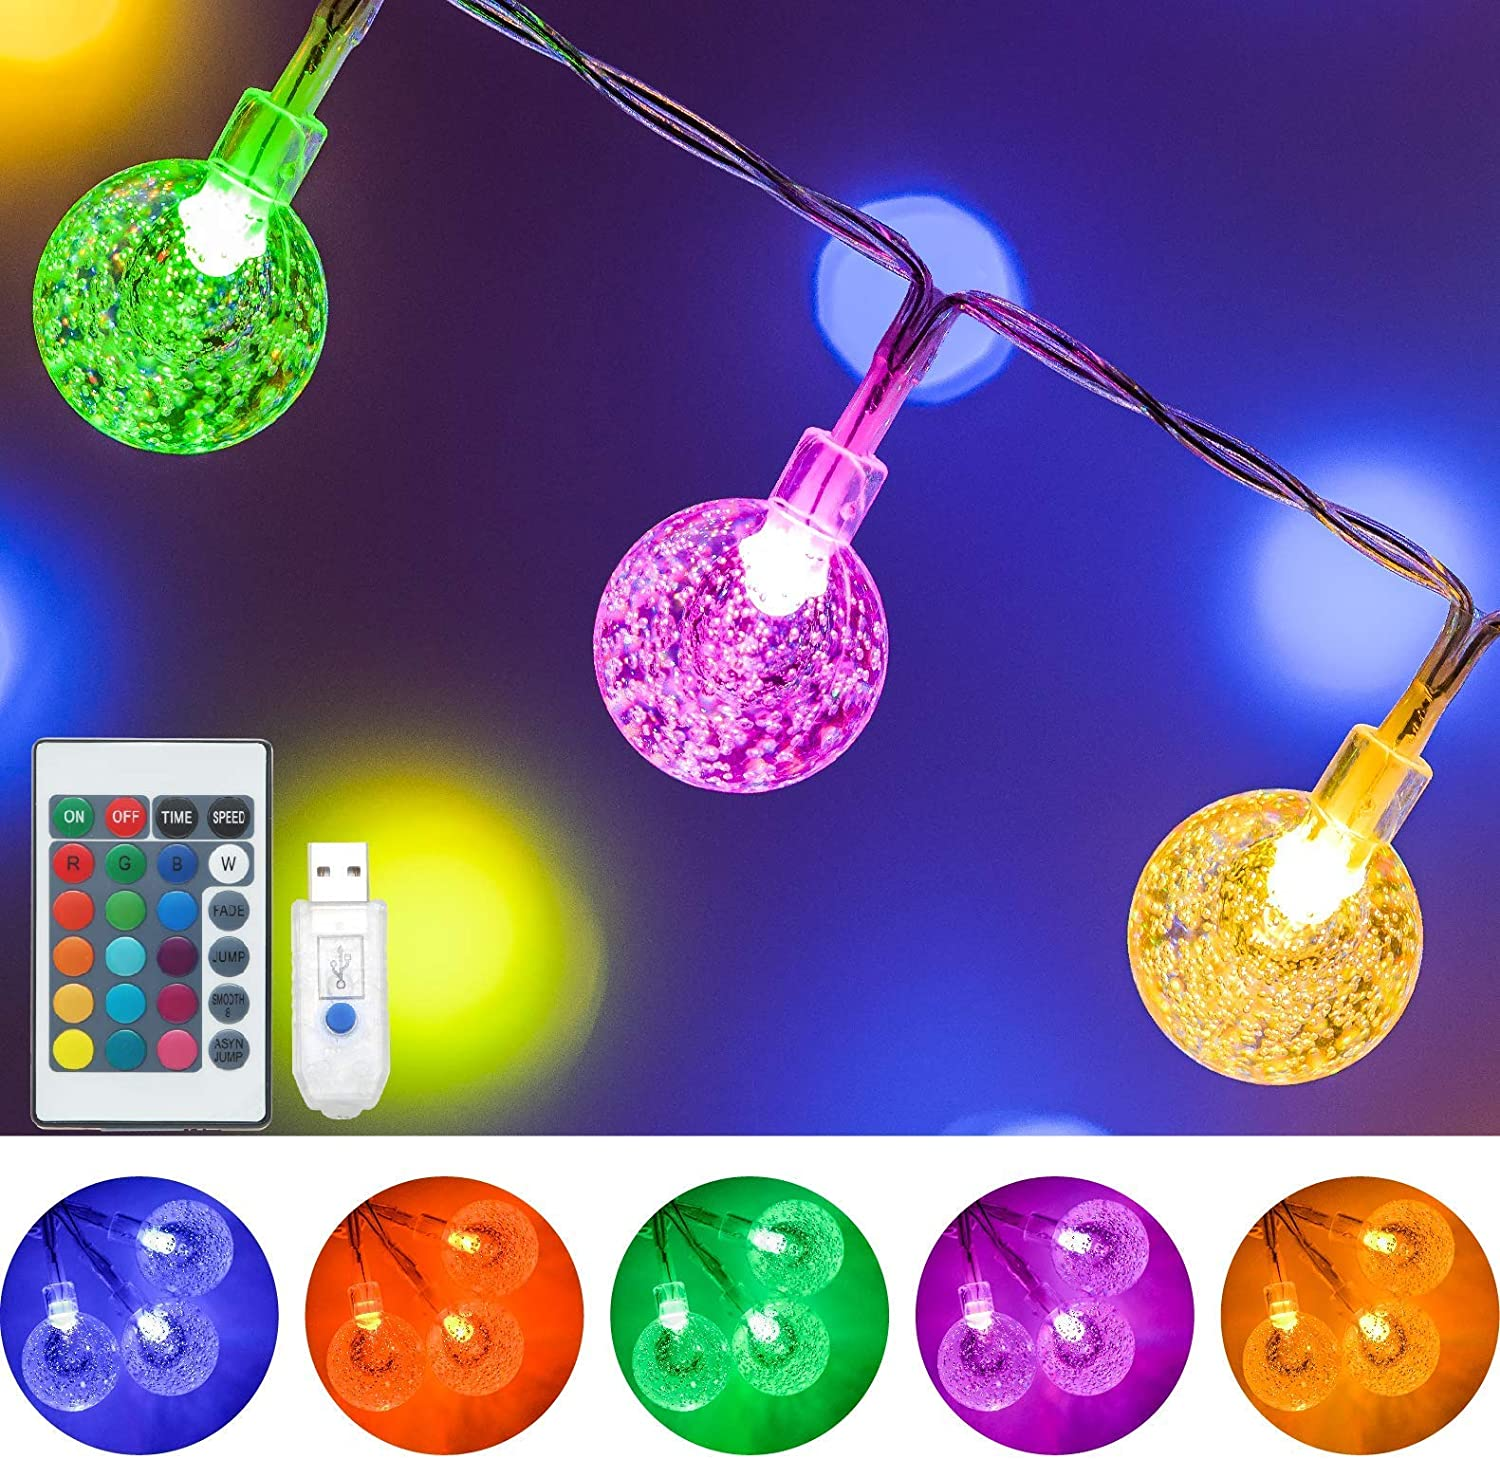 Color Changing Globe String Lights, 16.4Ft 50 LED USB Powered Crystal Ball Fairy String Lights with Remote Control for Teen Girls Bedroom Dorm Room Party Christmas Indoor Outdoor Decorations-16 Colors